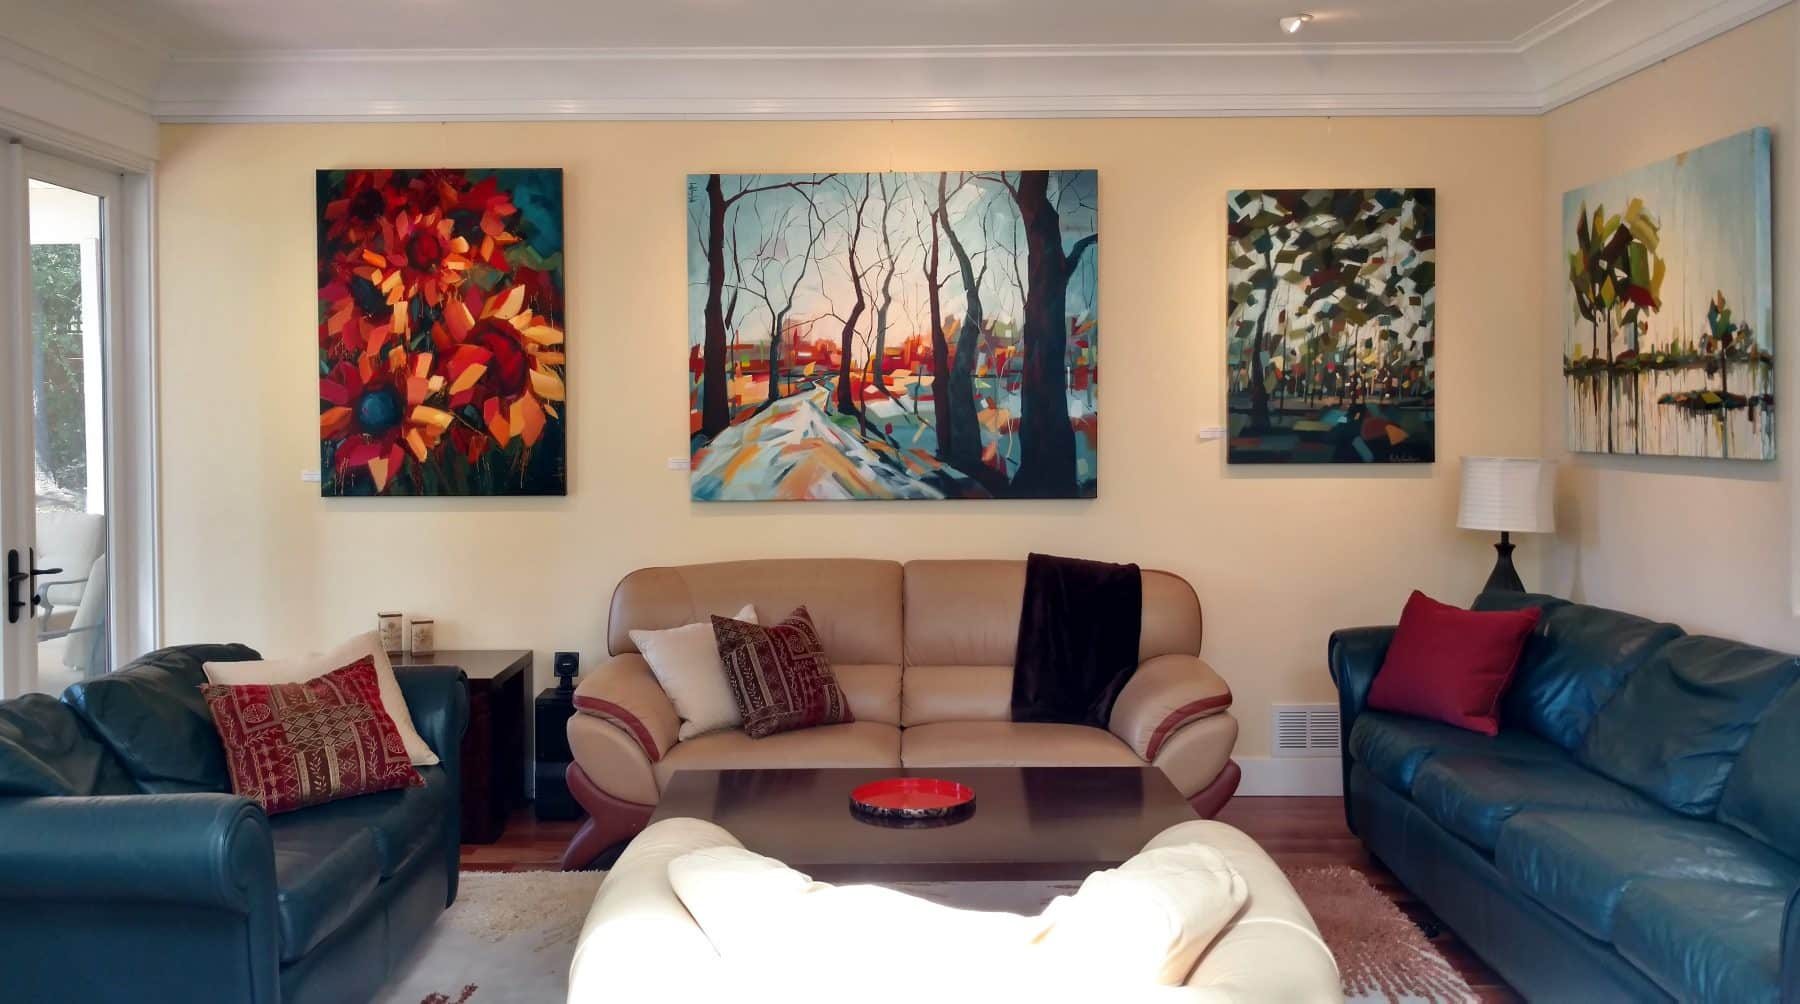 abstract floral and forest paintings on canvas by Holly Van Hart | paintings for sale